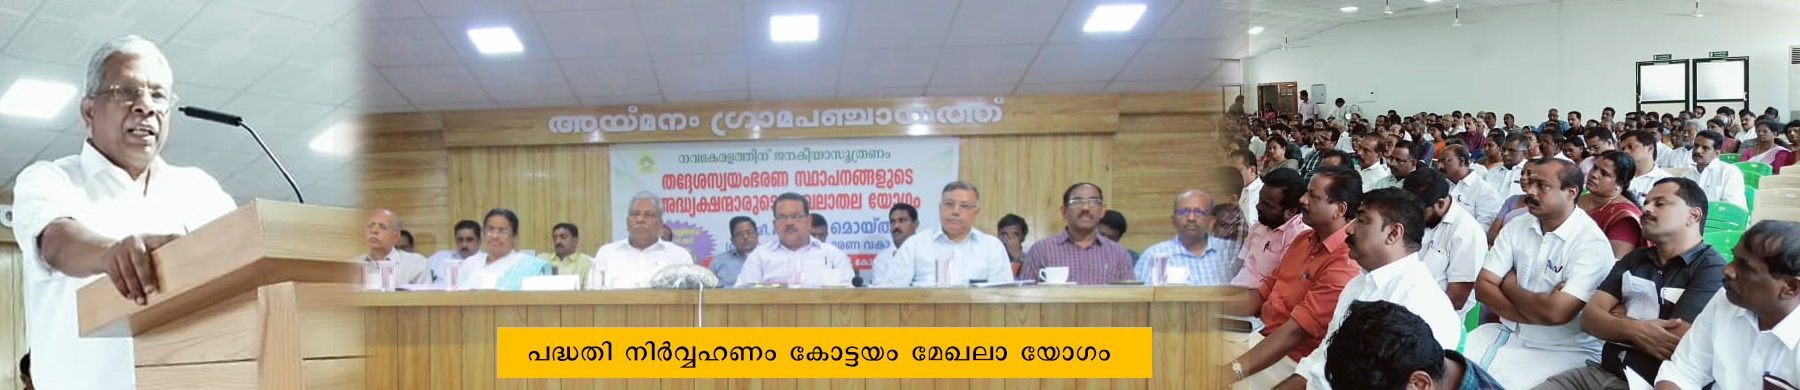 Annual plan kottayam regional meeting